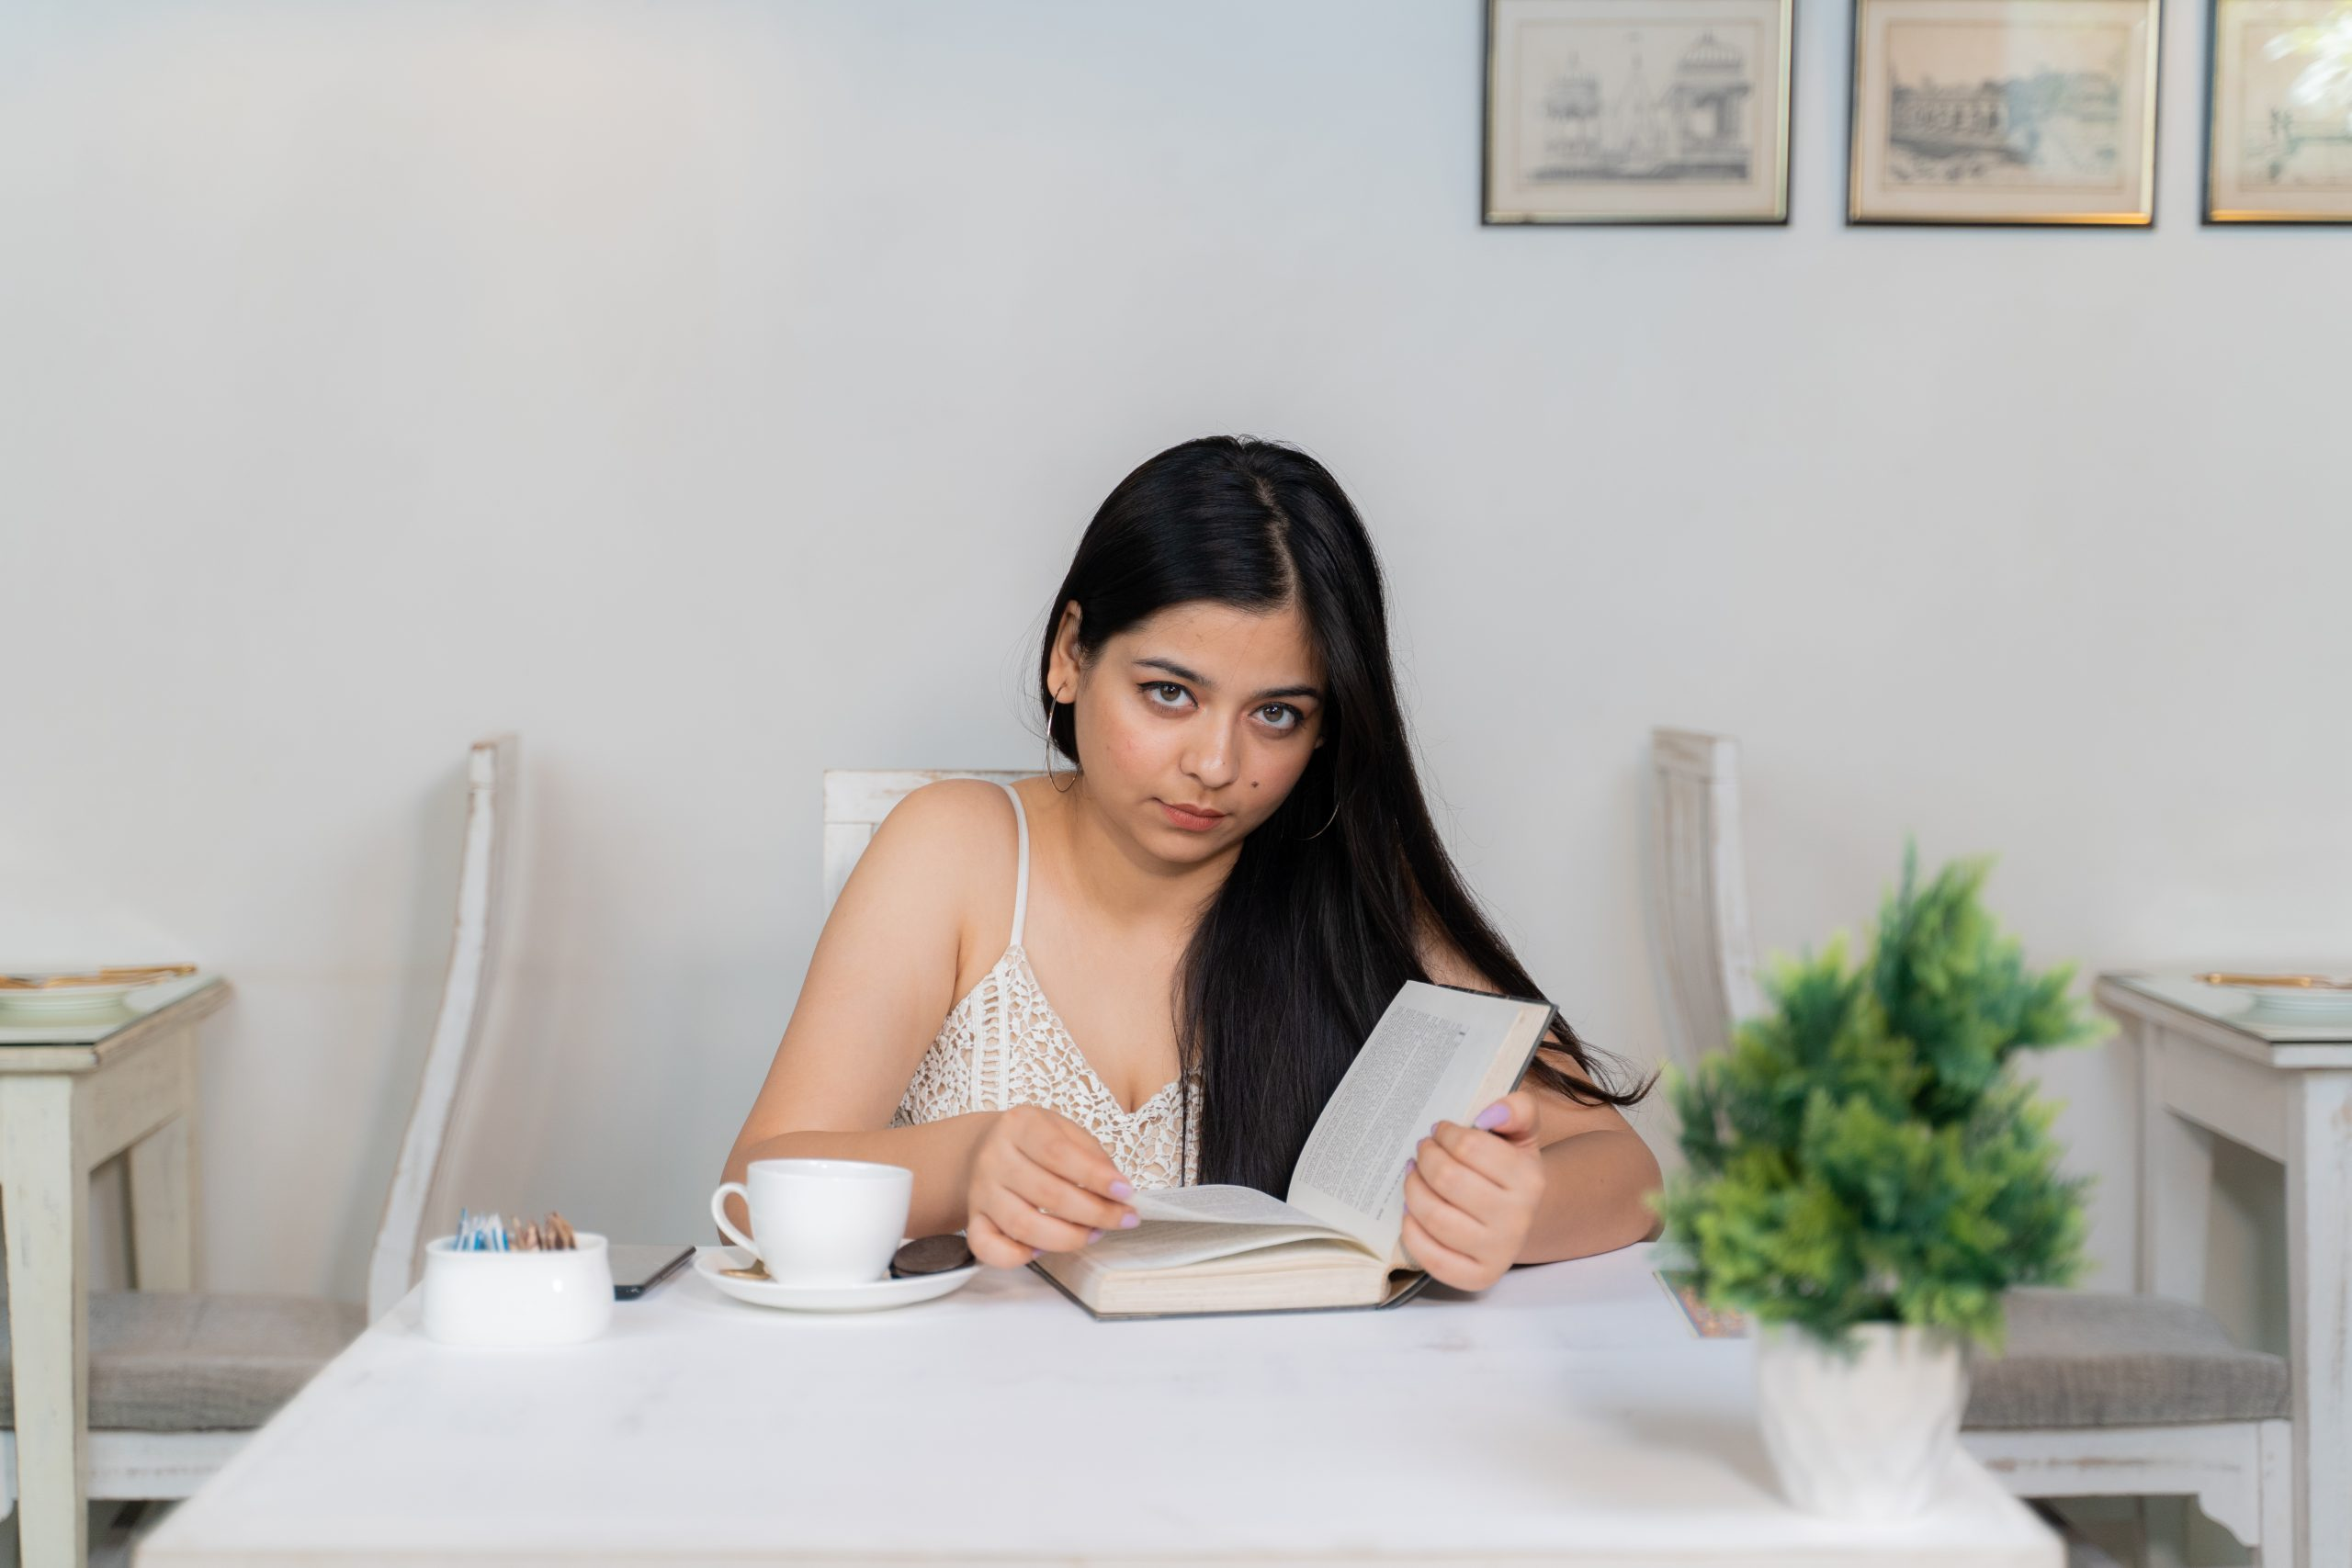 A girl staring while reading